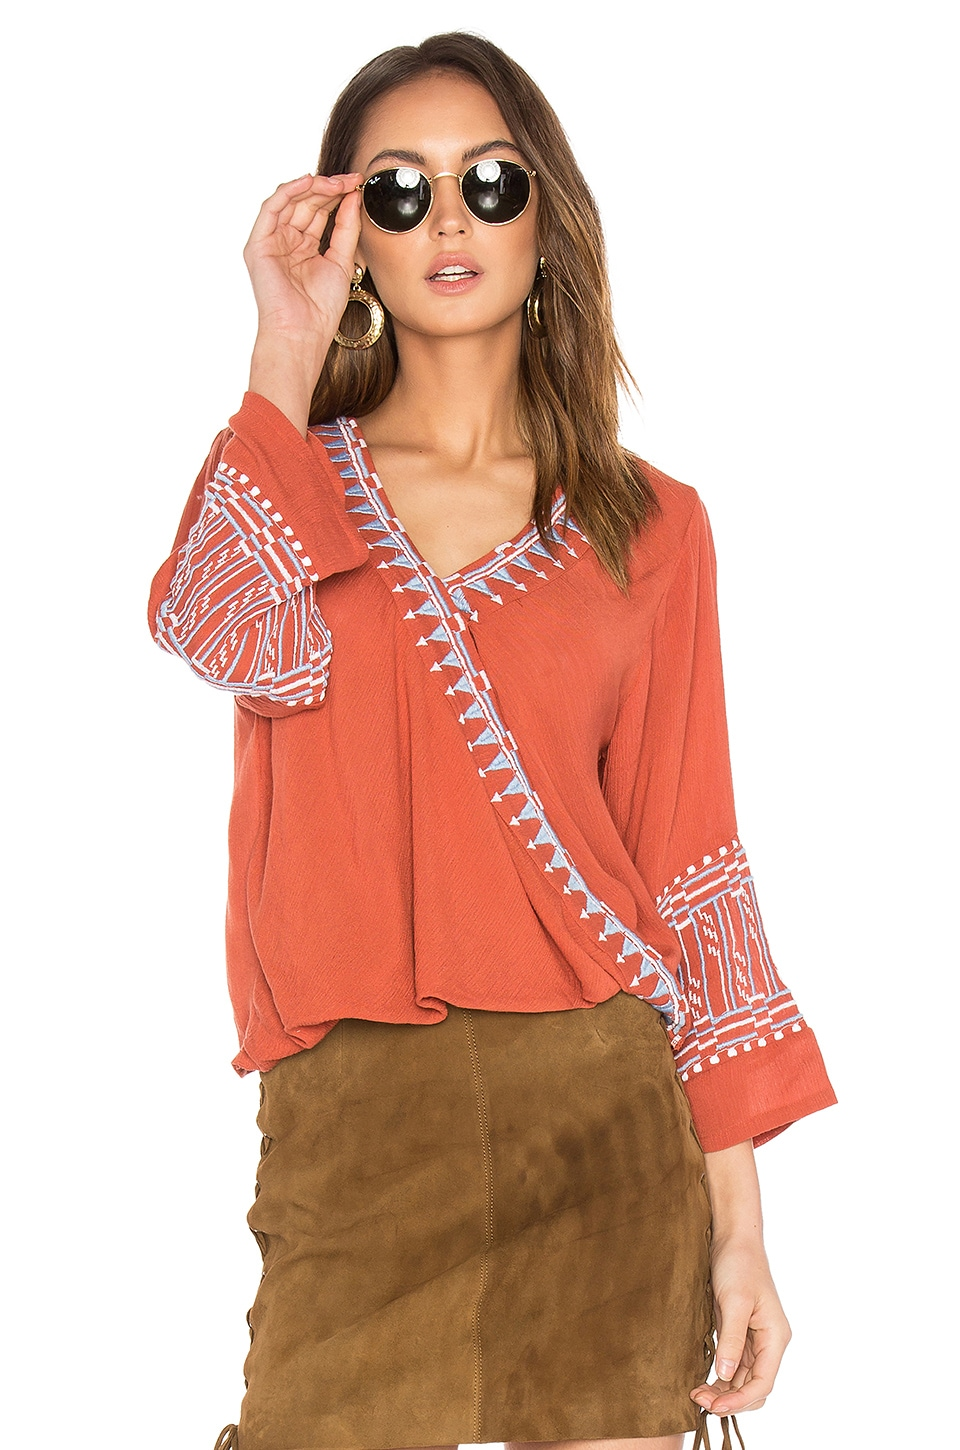 Butan Embroidered Top by PIPER